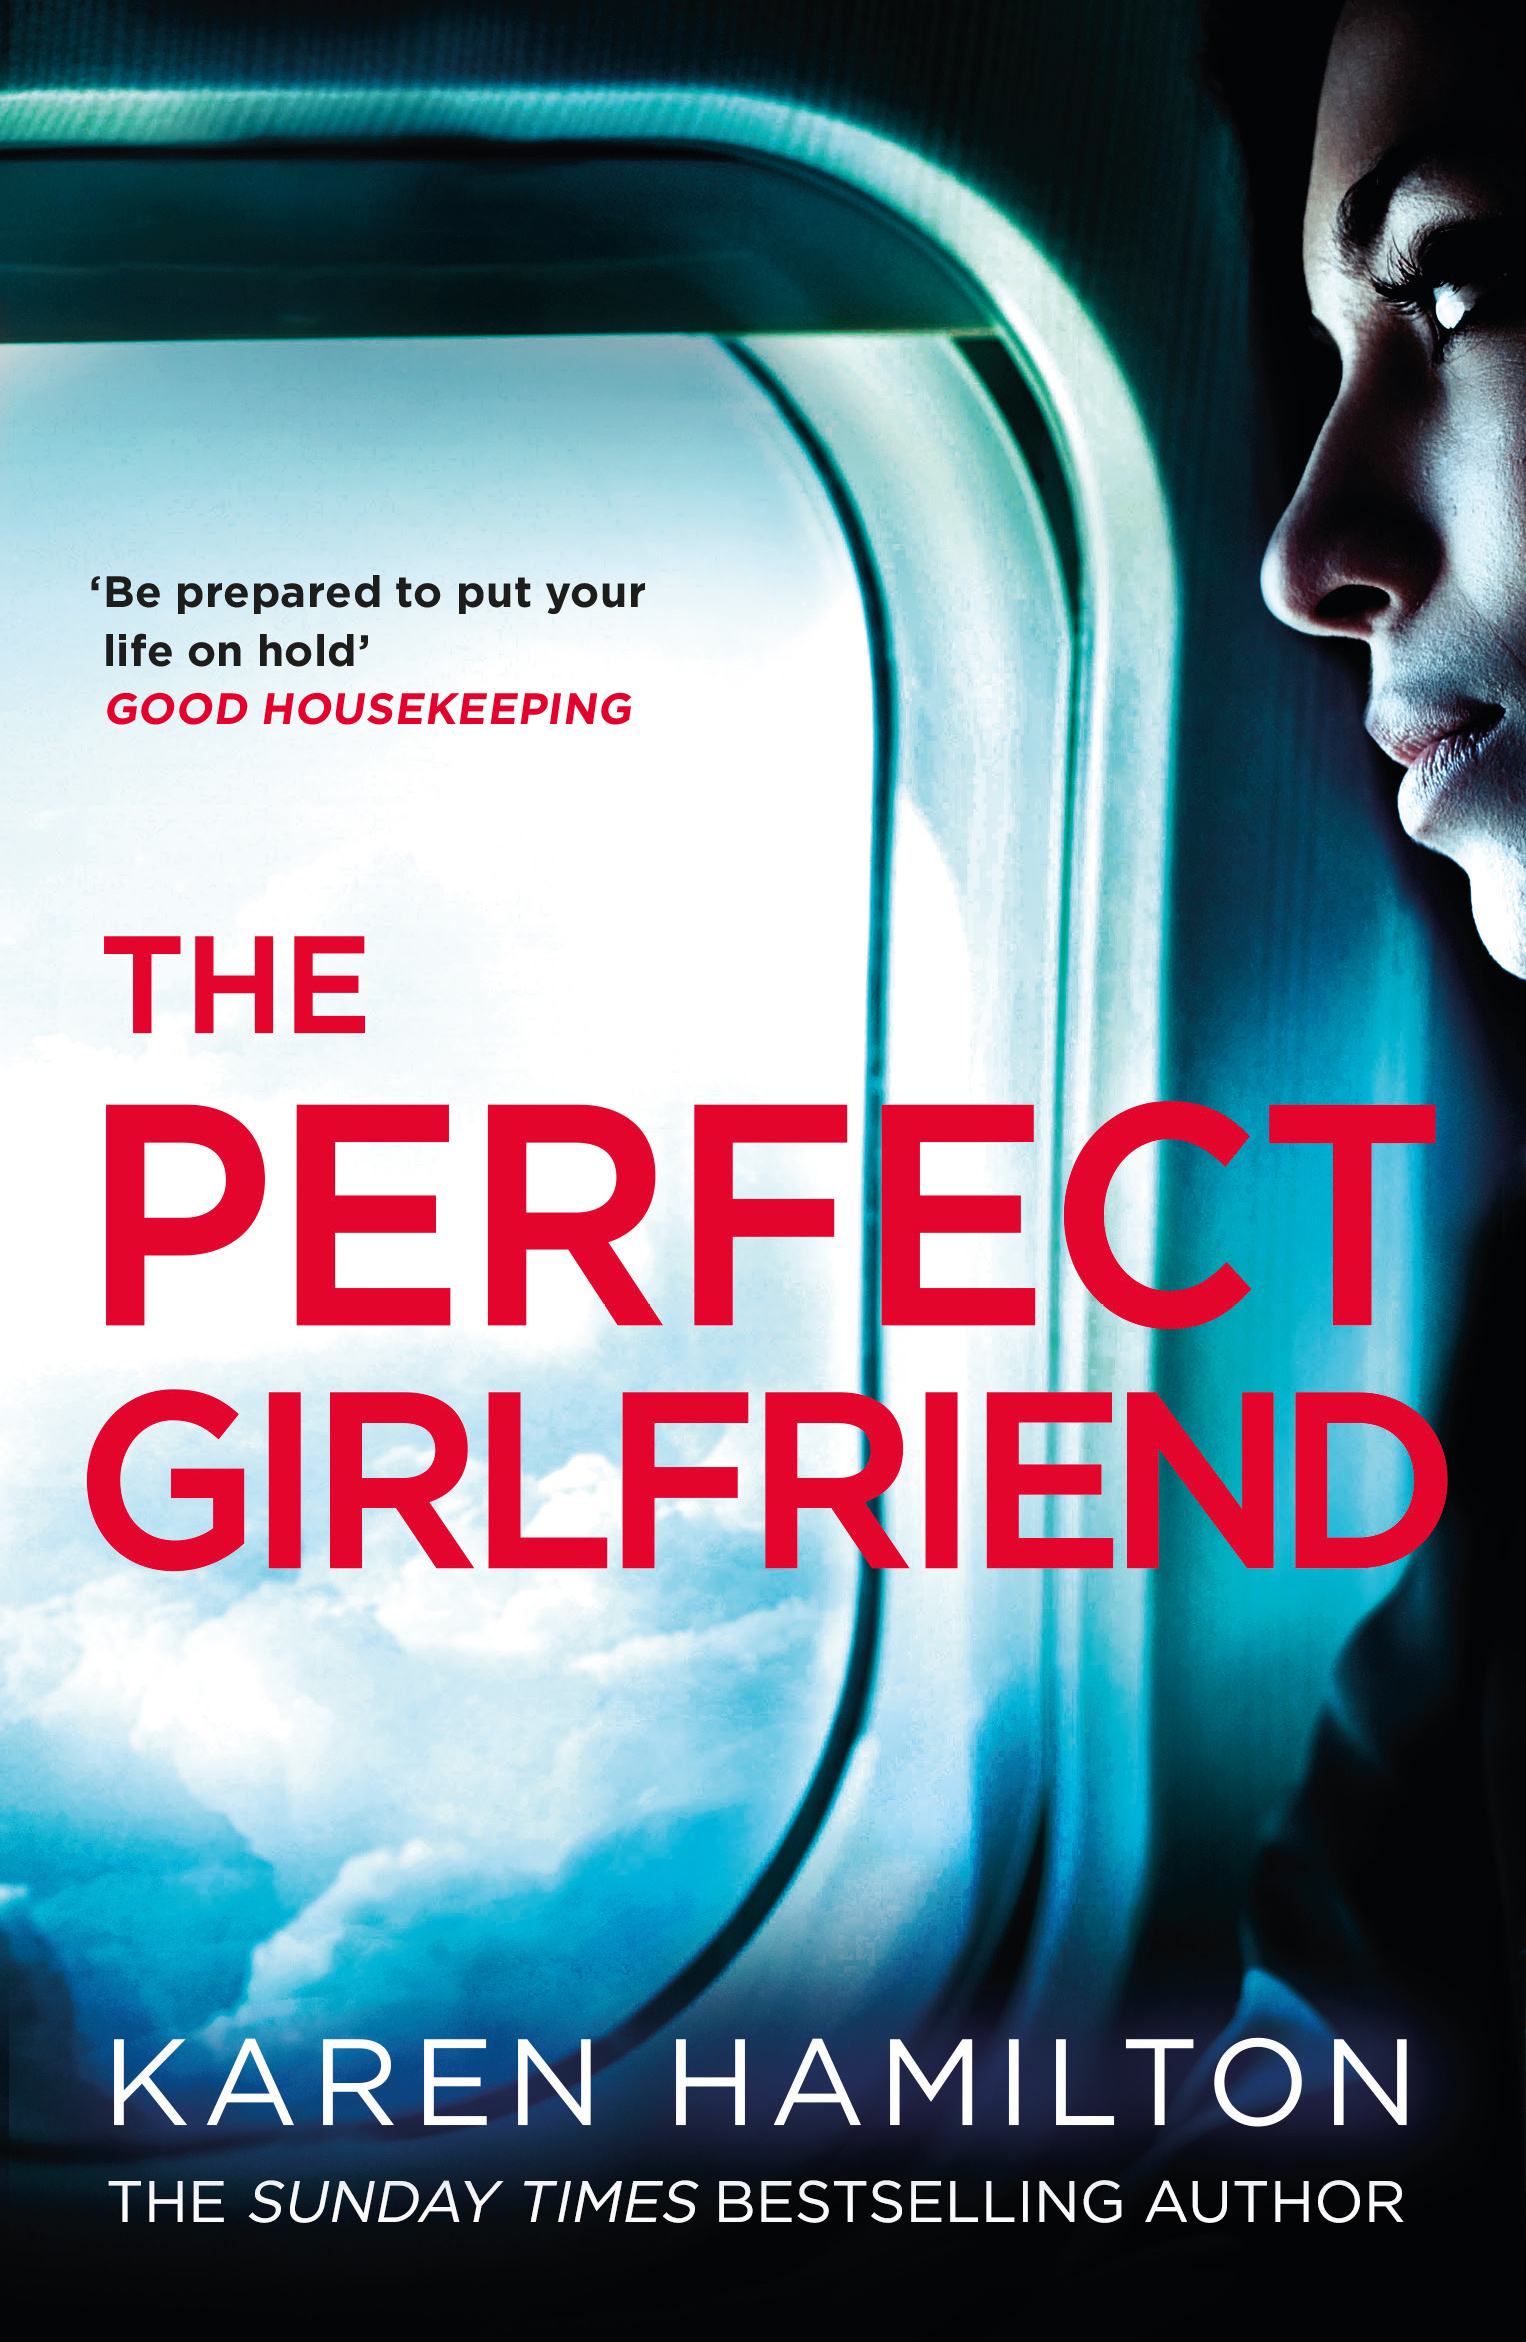 The Perfect Girlfriend The Most Twisted Love Story You Ll Read